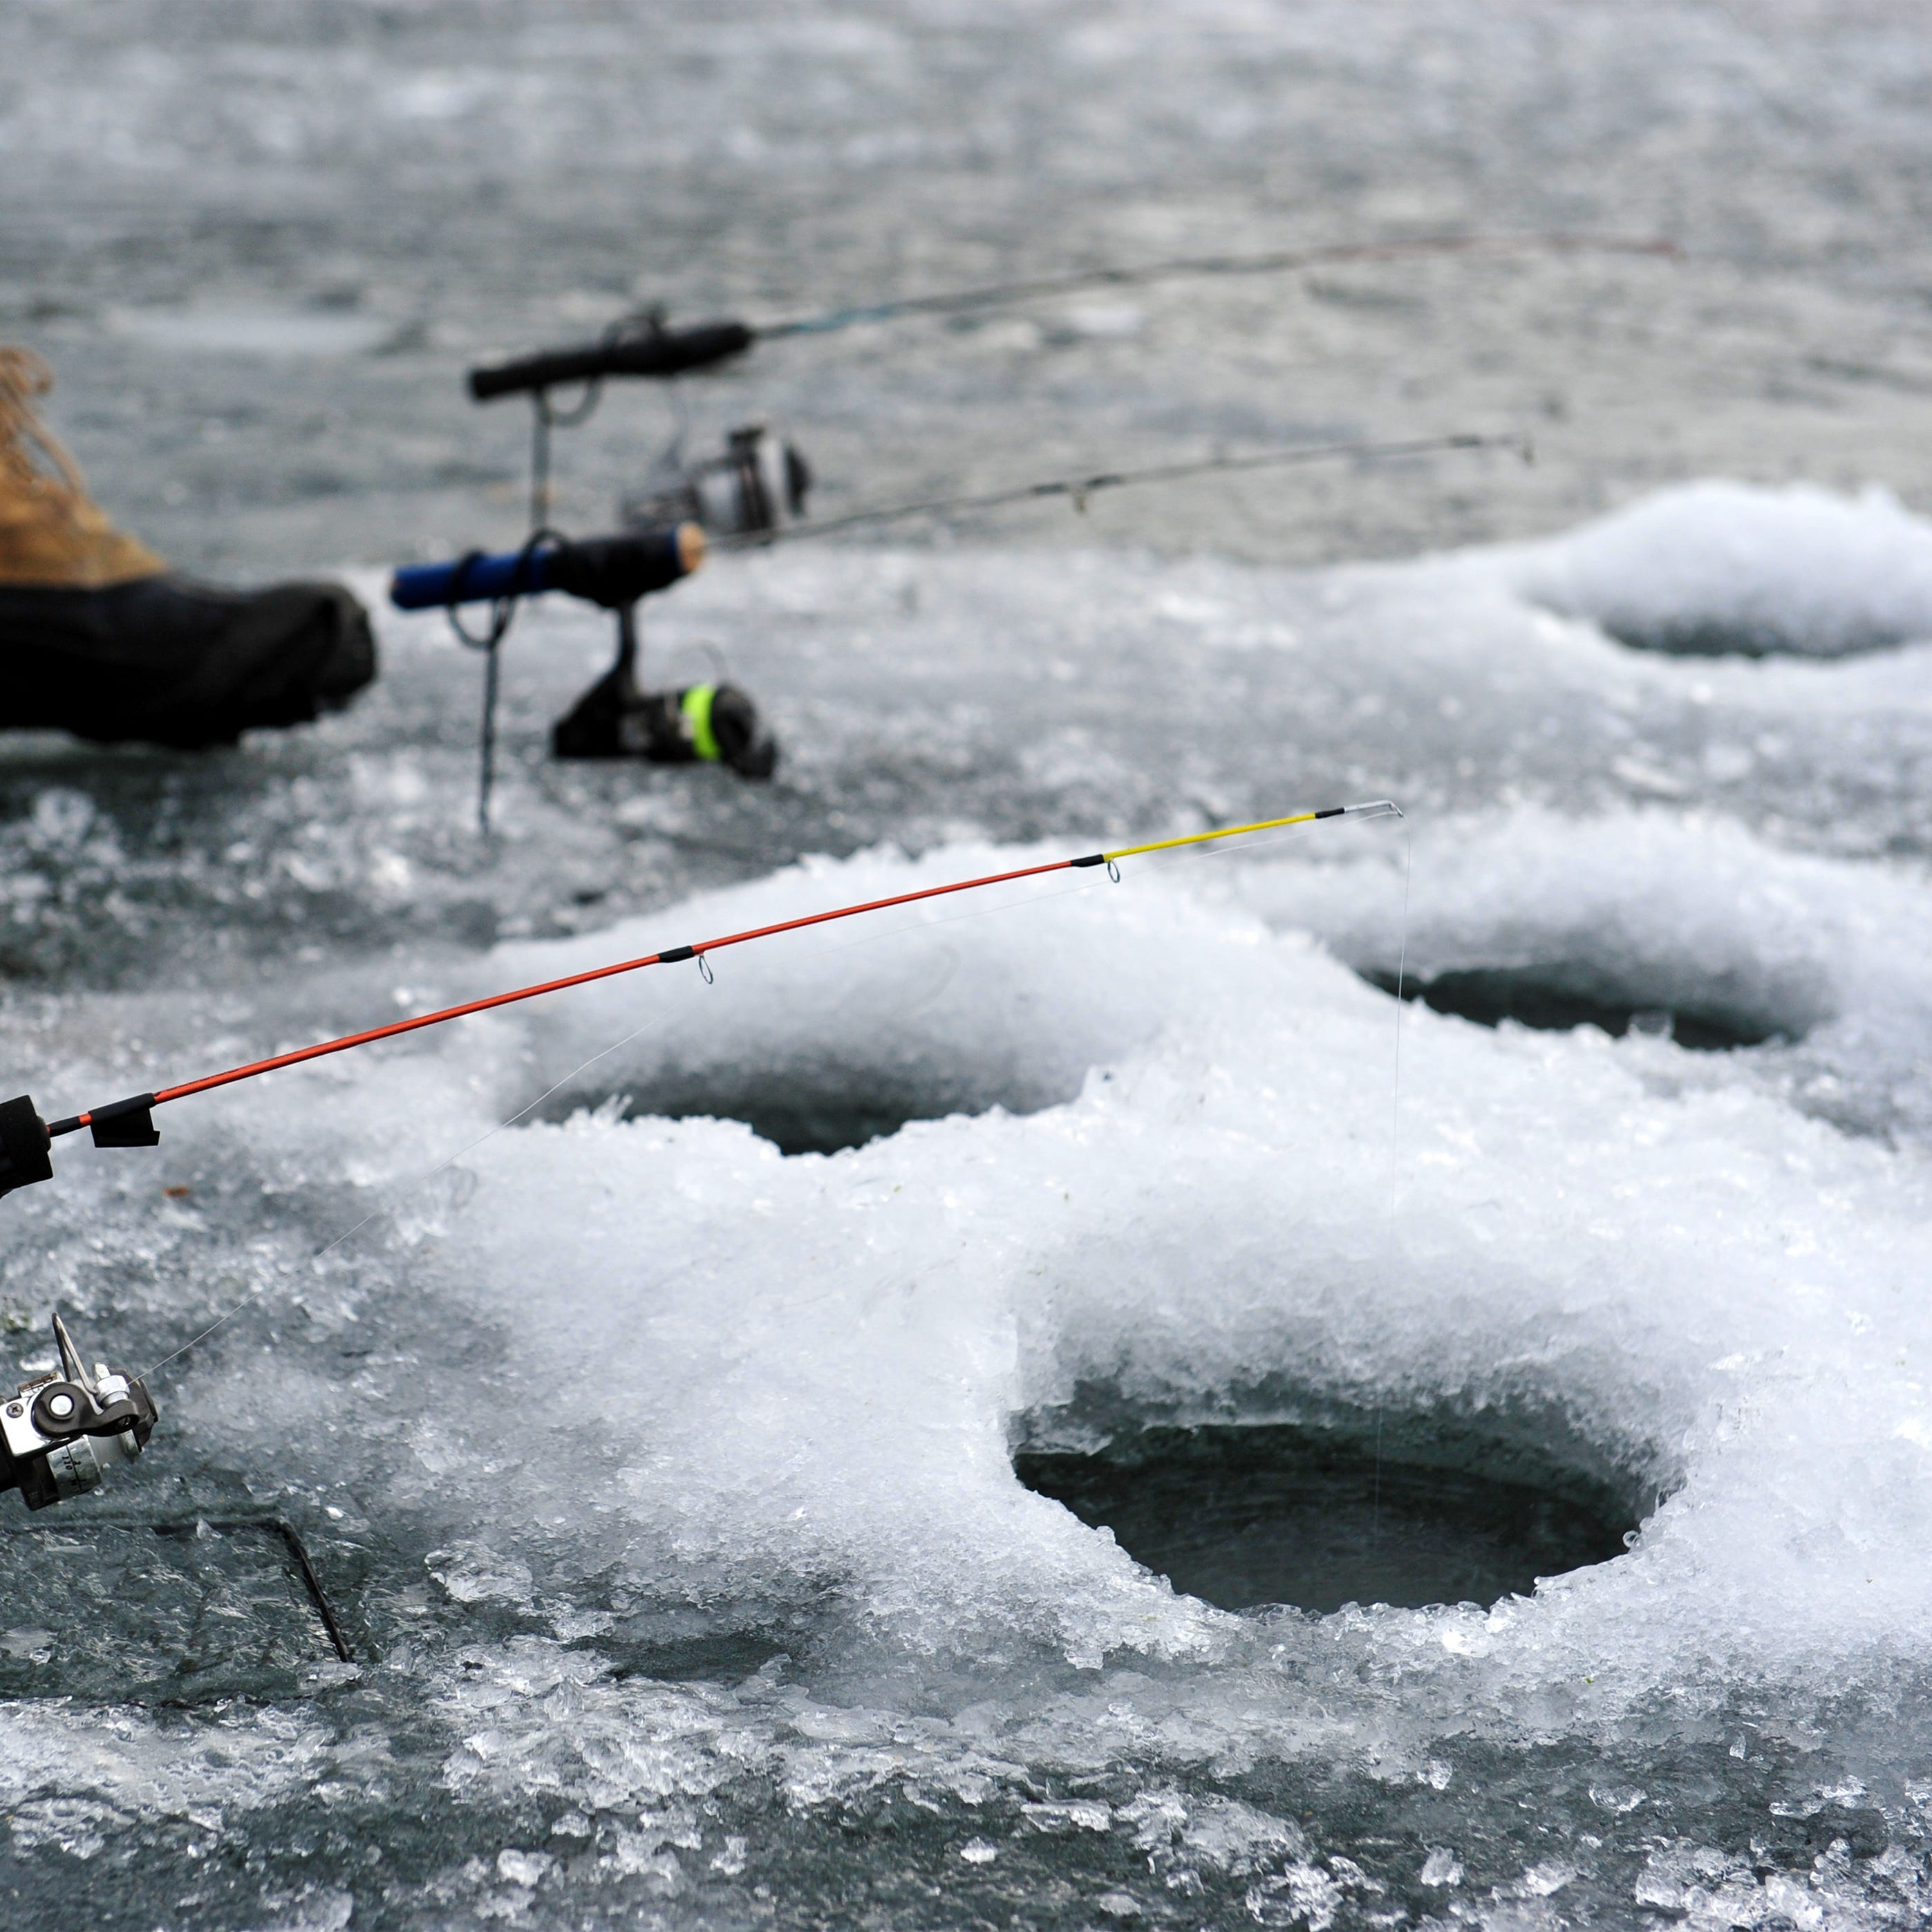 Ice fishing contests approved for Regions 4, 6